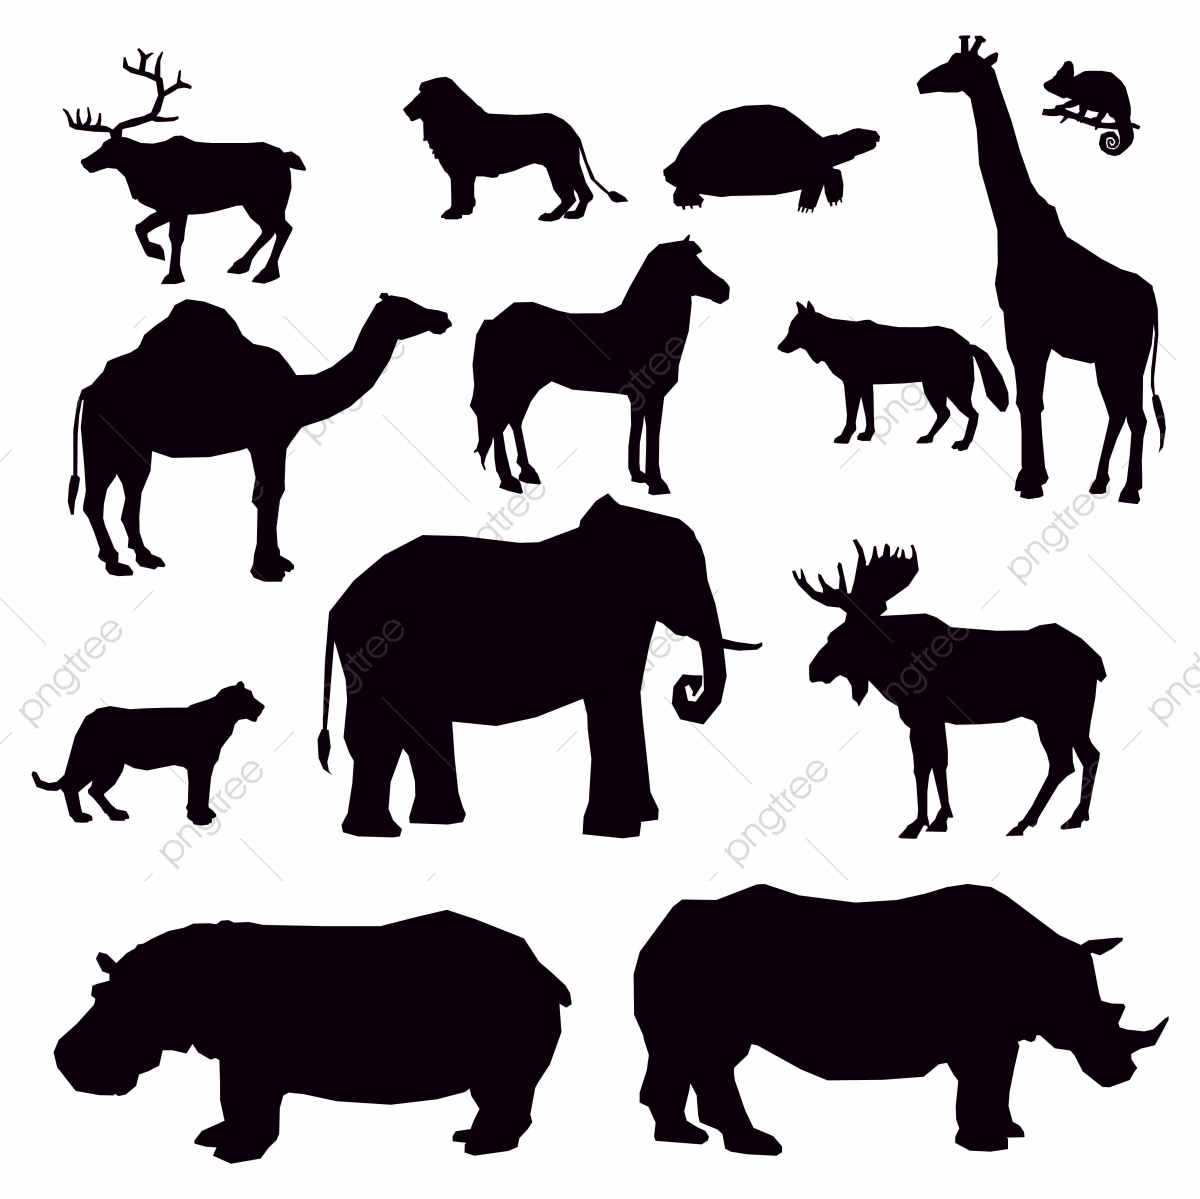 Free african animal clipart. Black silhouettes of animals